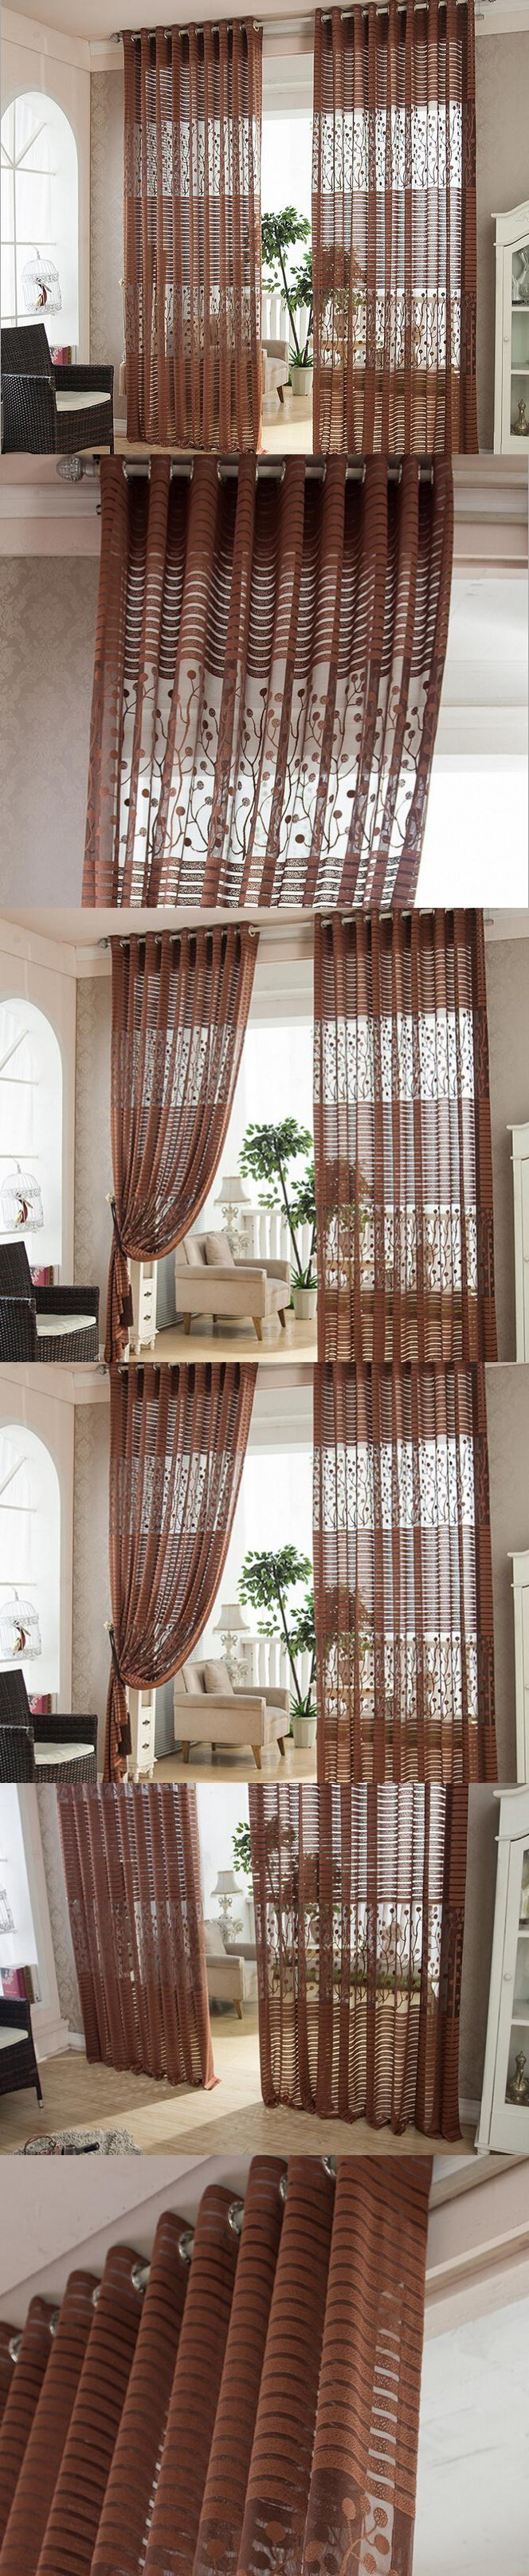 Living Room Curtains Luxury Window Curtains Modern Living Room Curtain Embroidered